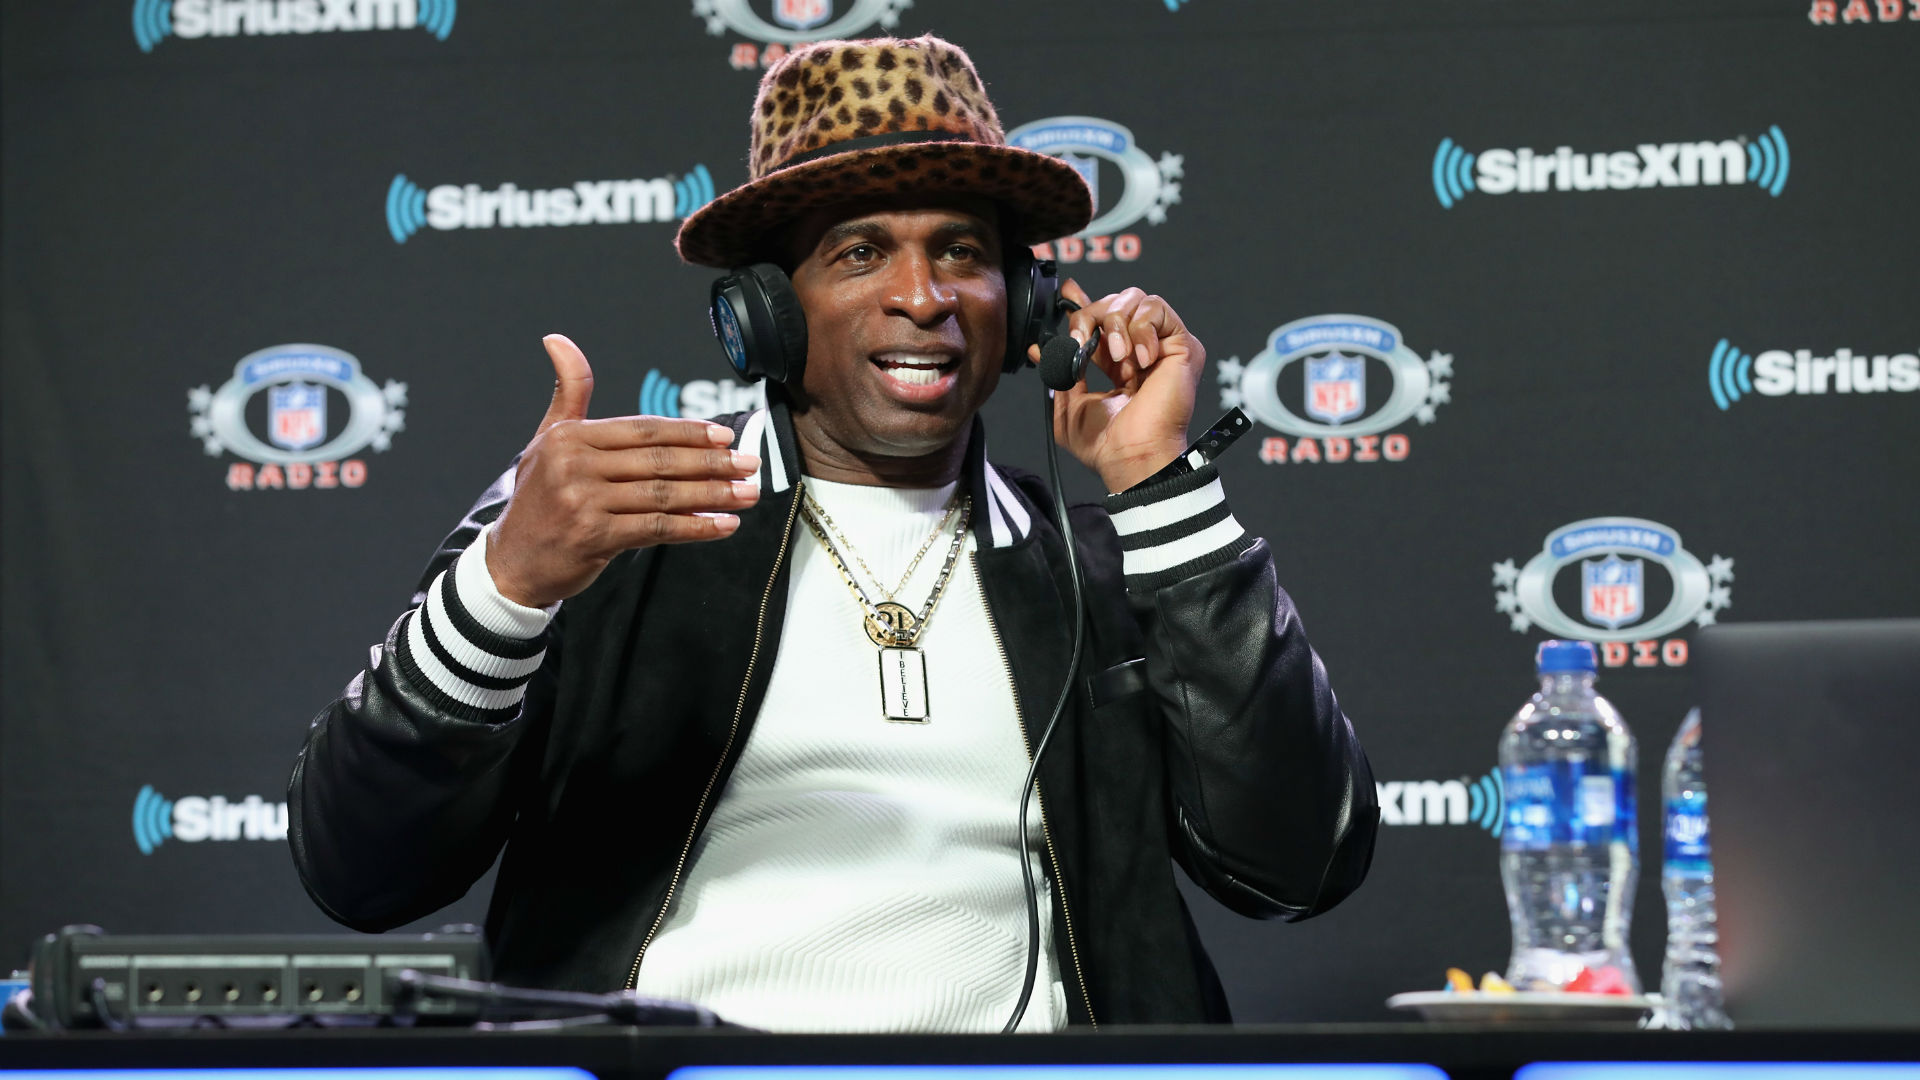 Deion Sanders' Pro Football Hall of Fame snobbery does not justify so much snubbery